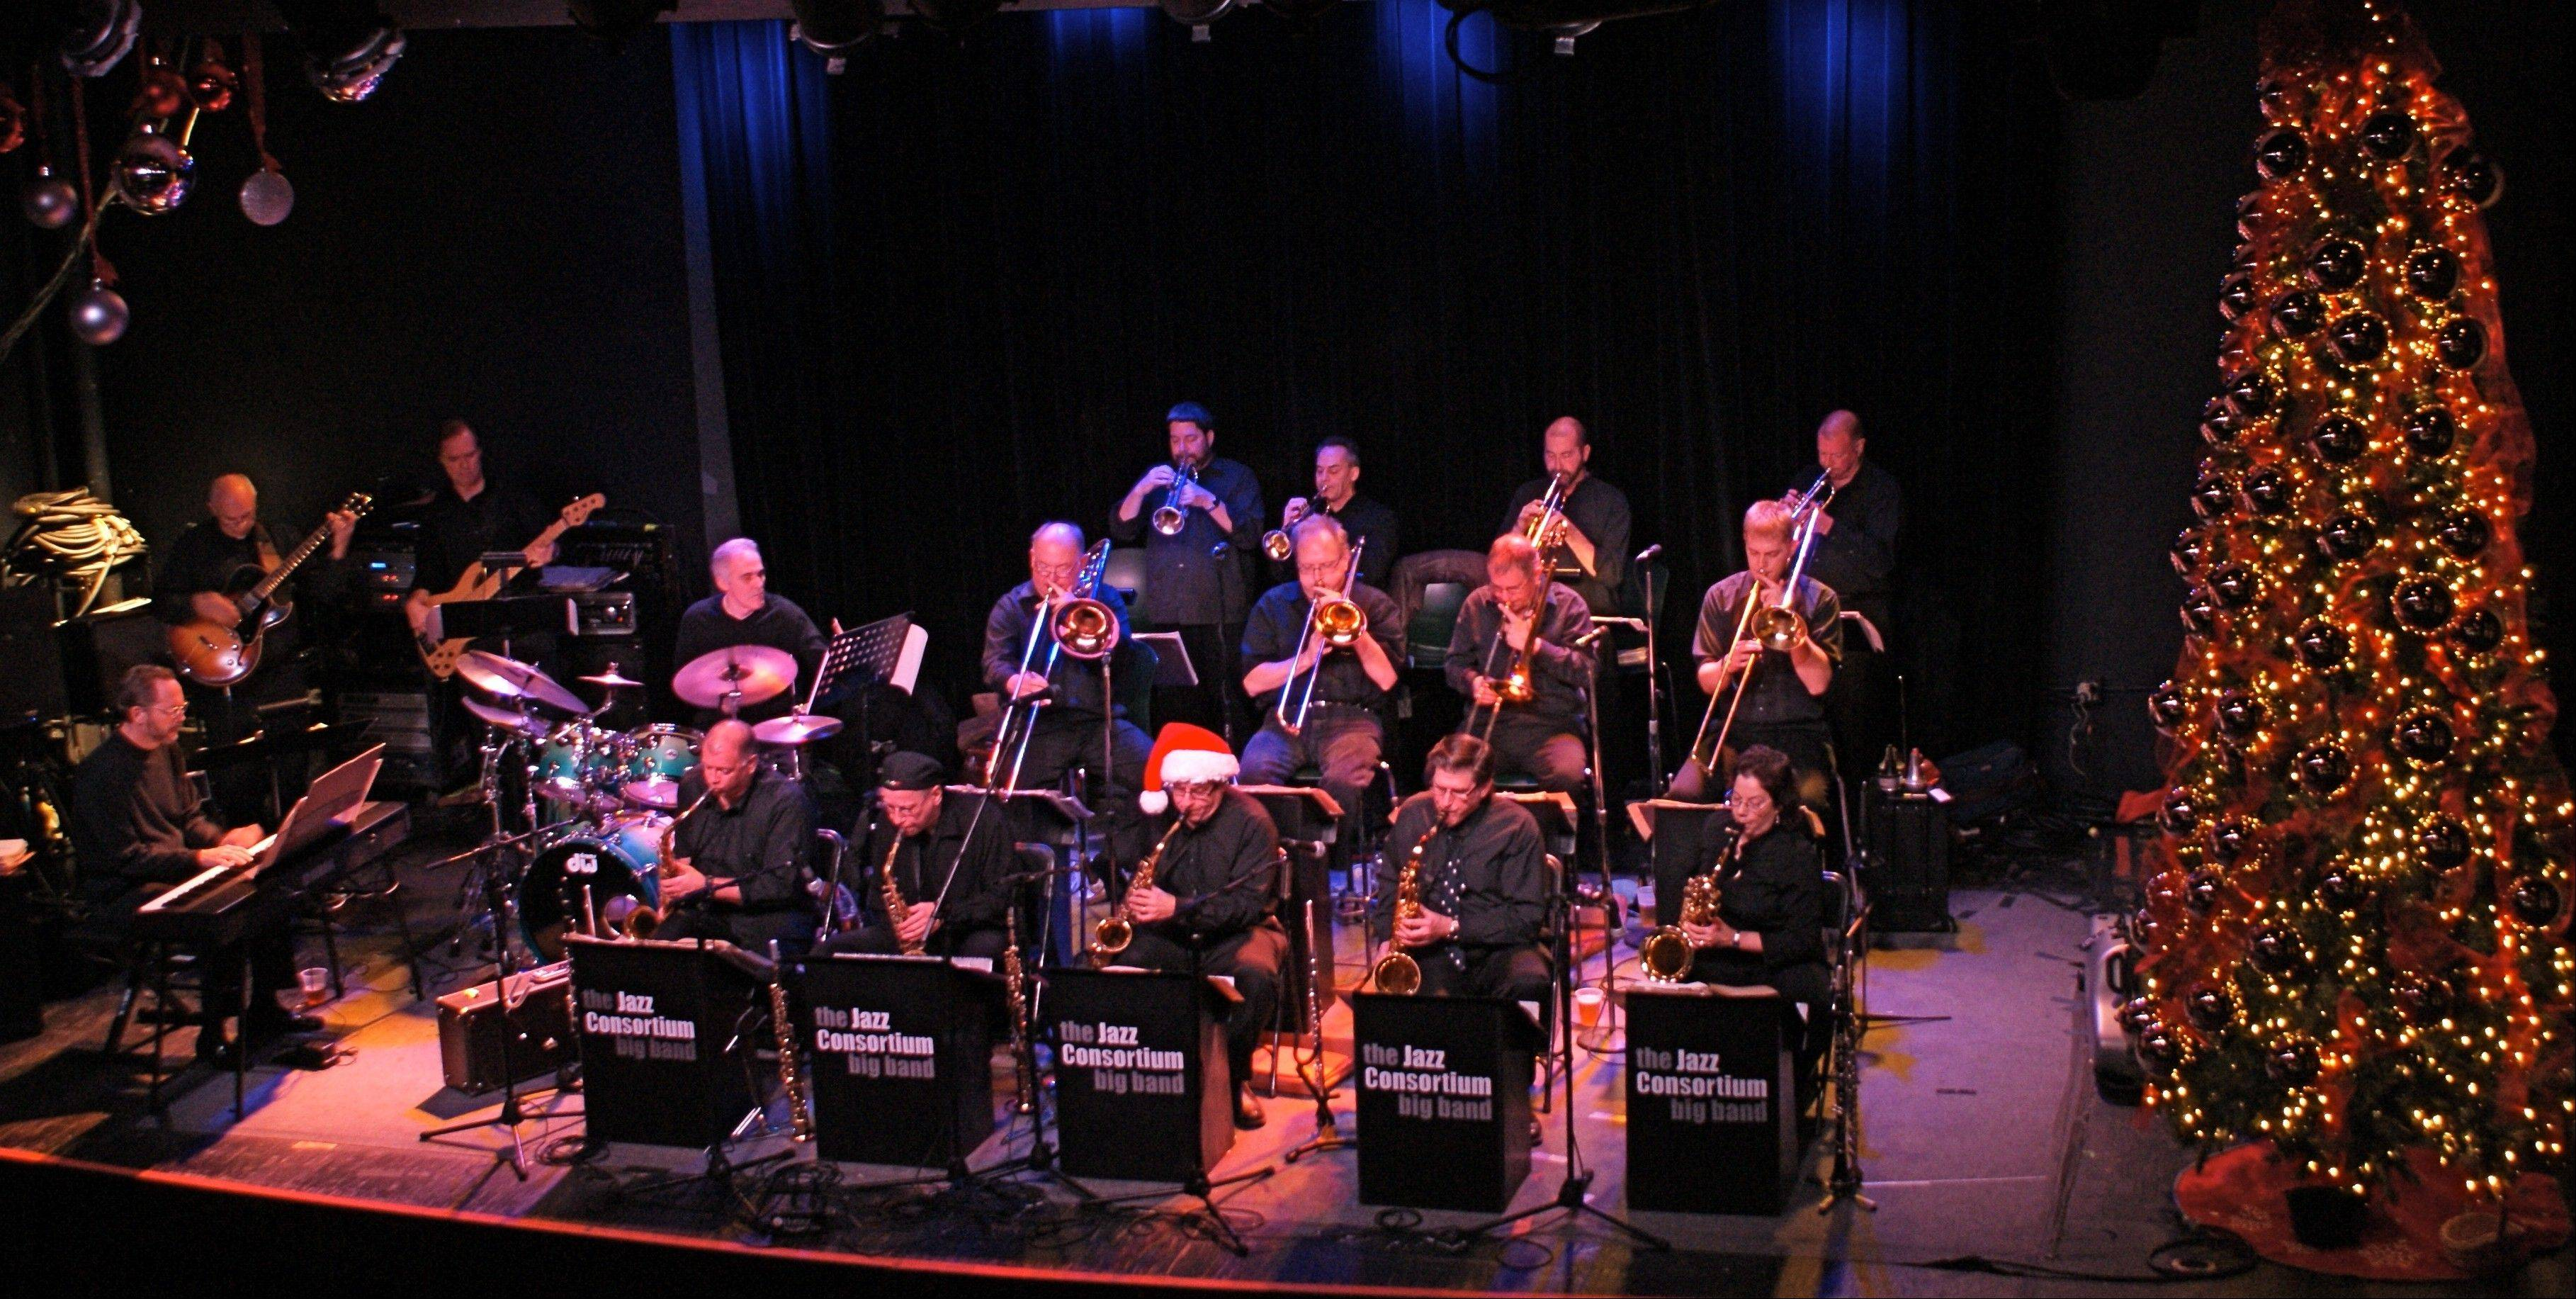 The Jazz Consortium Big Band is holding a food drive to benefit the Palatine Township Food Pantry in conjunction with is Sunday, Dec. 9, performance at Durty Nellie's Pub in Palatine.